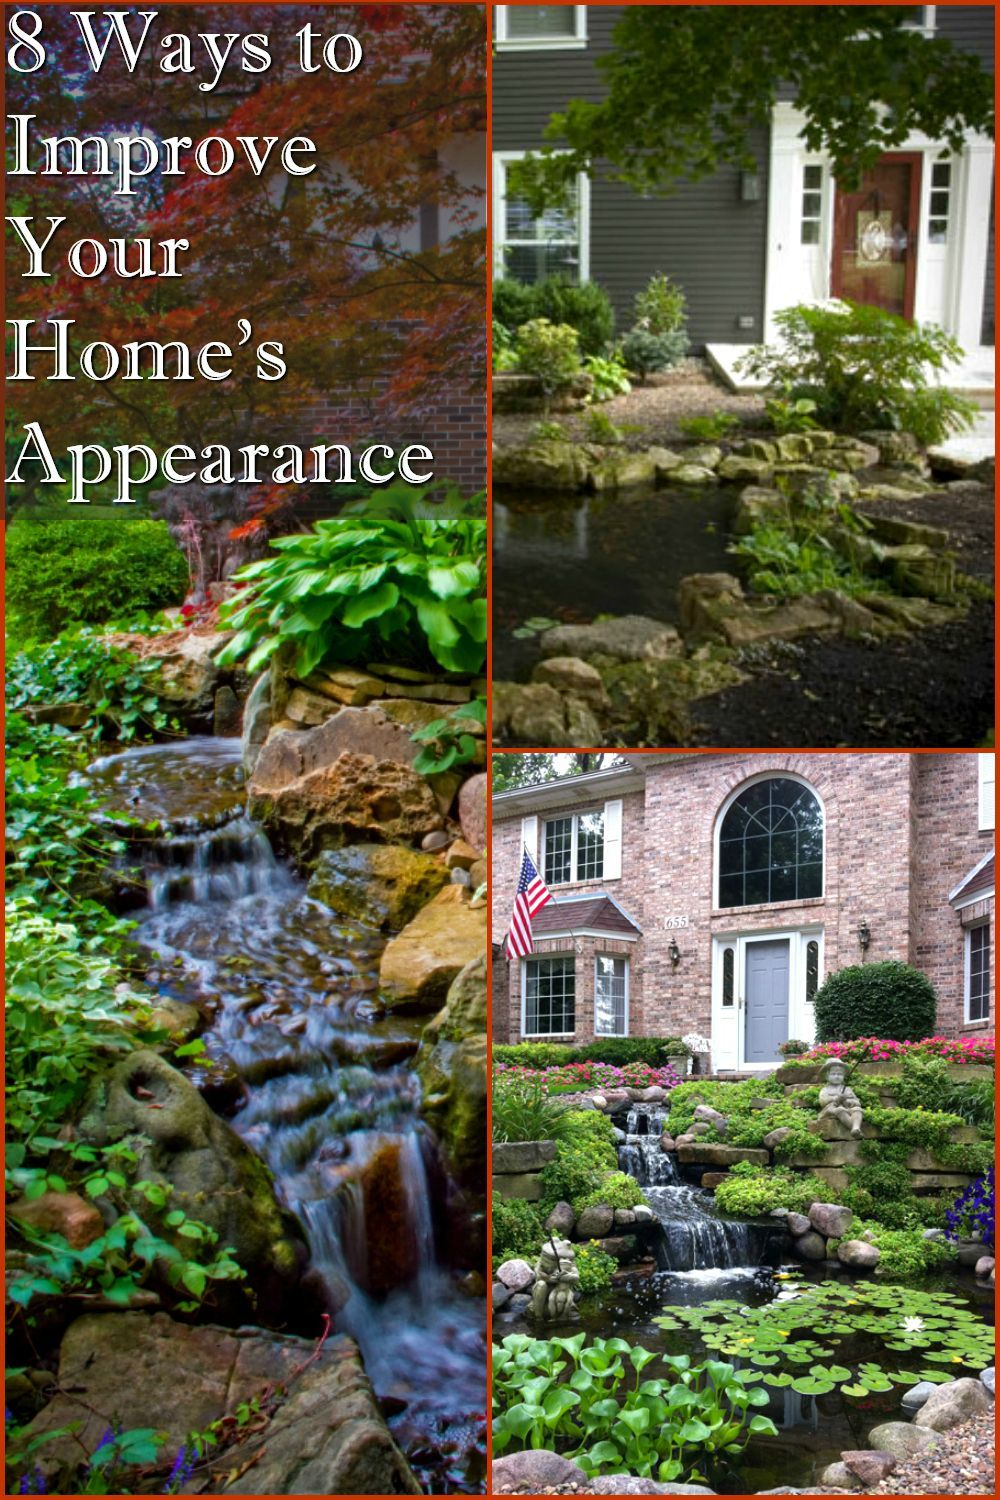 8 Ways to Improve Your Home's Appearance   Aquascape, Inc ...